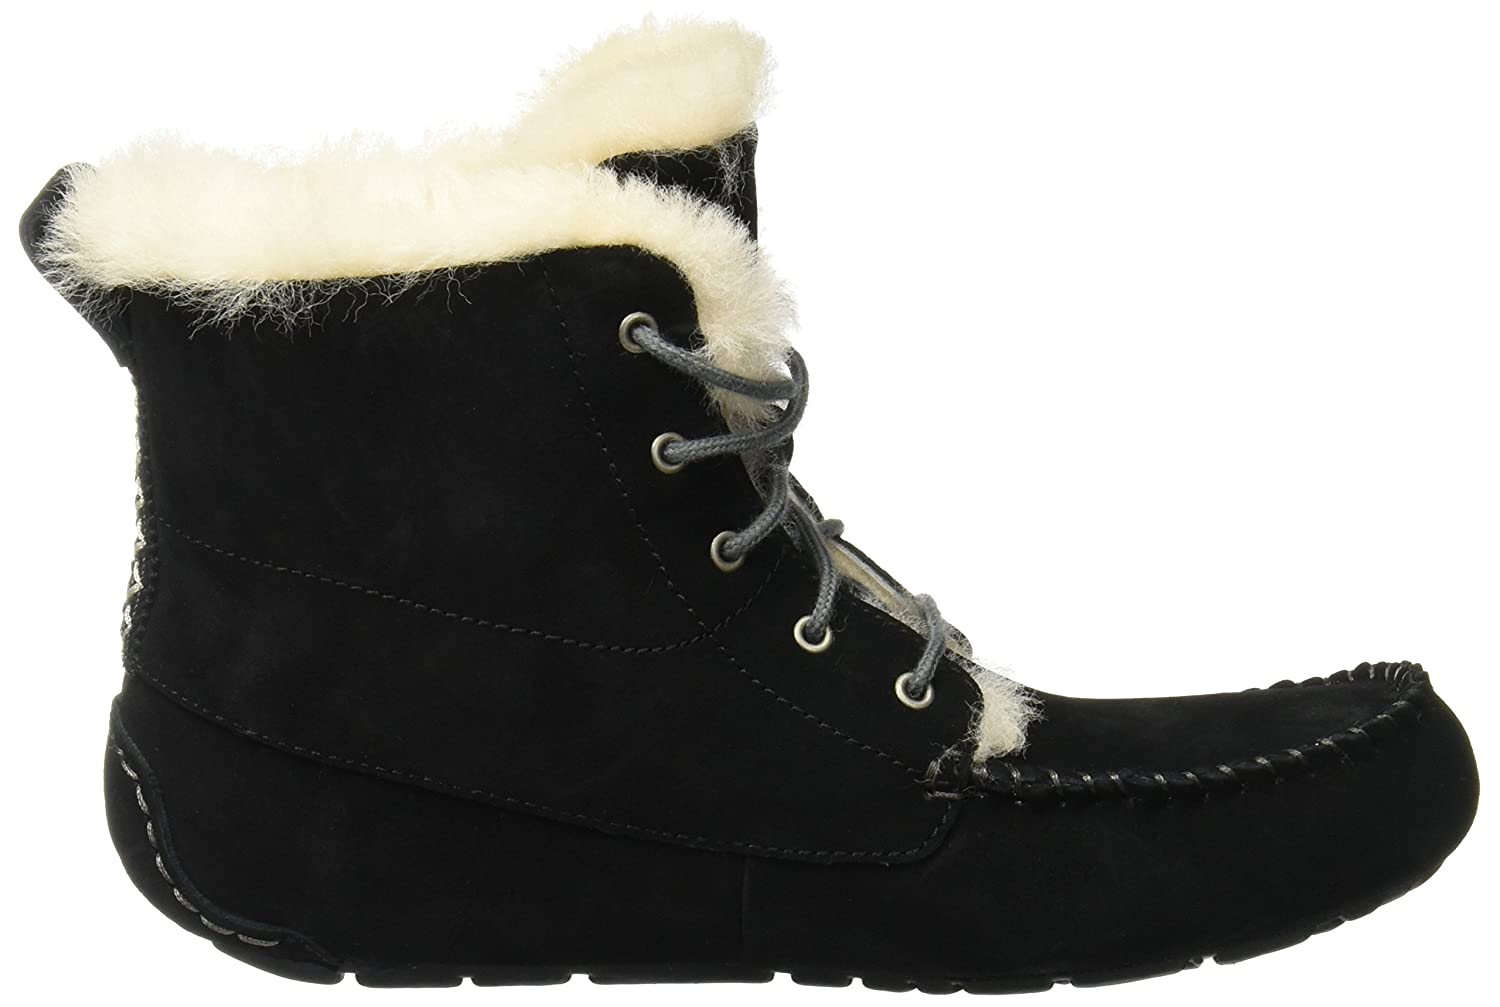 d147b8528ec UGG Australia Chickaree Moccasin Womens Slippers